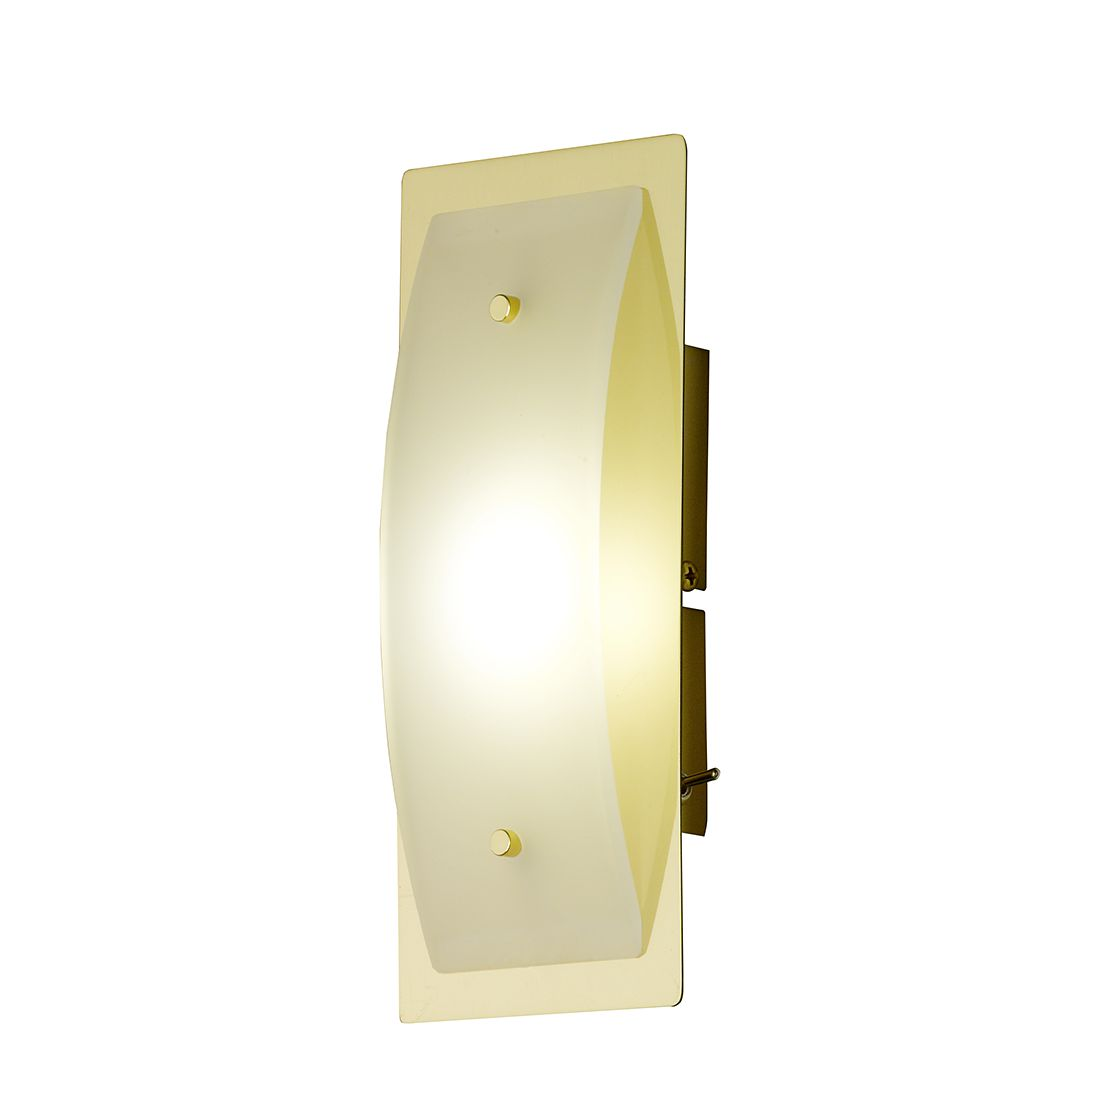 home24 LED-Wandleuchte Liana Metall Gold